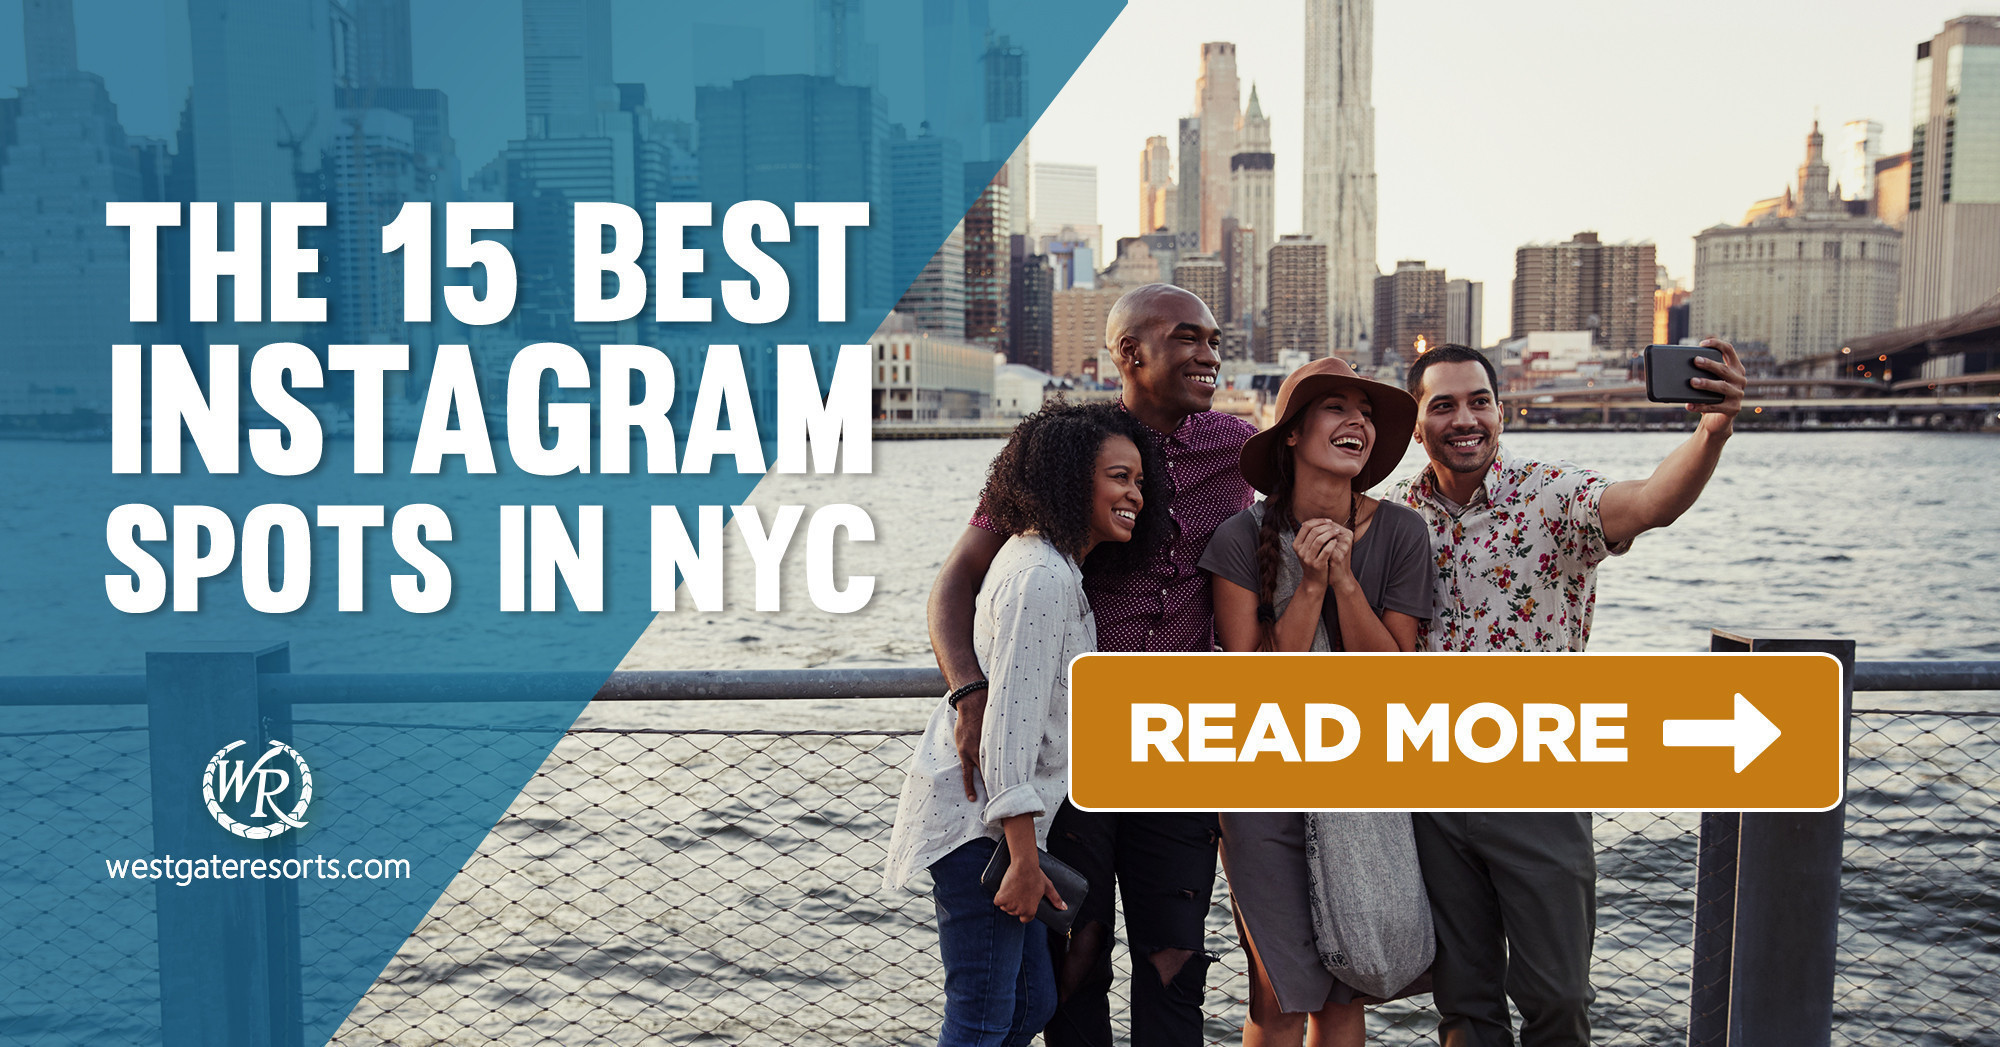 15 Best Instagram Spots In NYC | NYC Instagram Spots Near Midtown Manhattan And Beyond in NYC